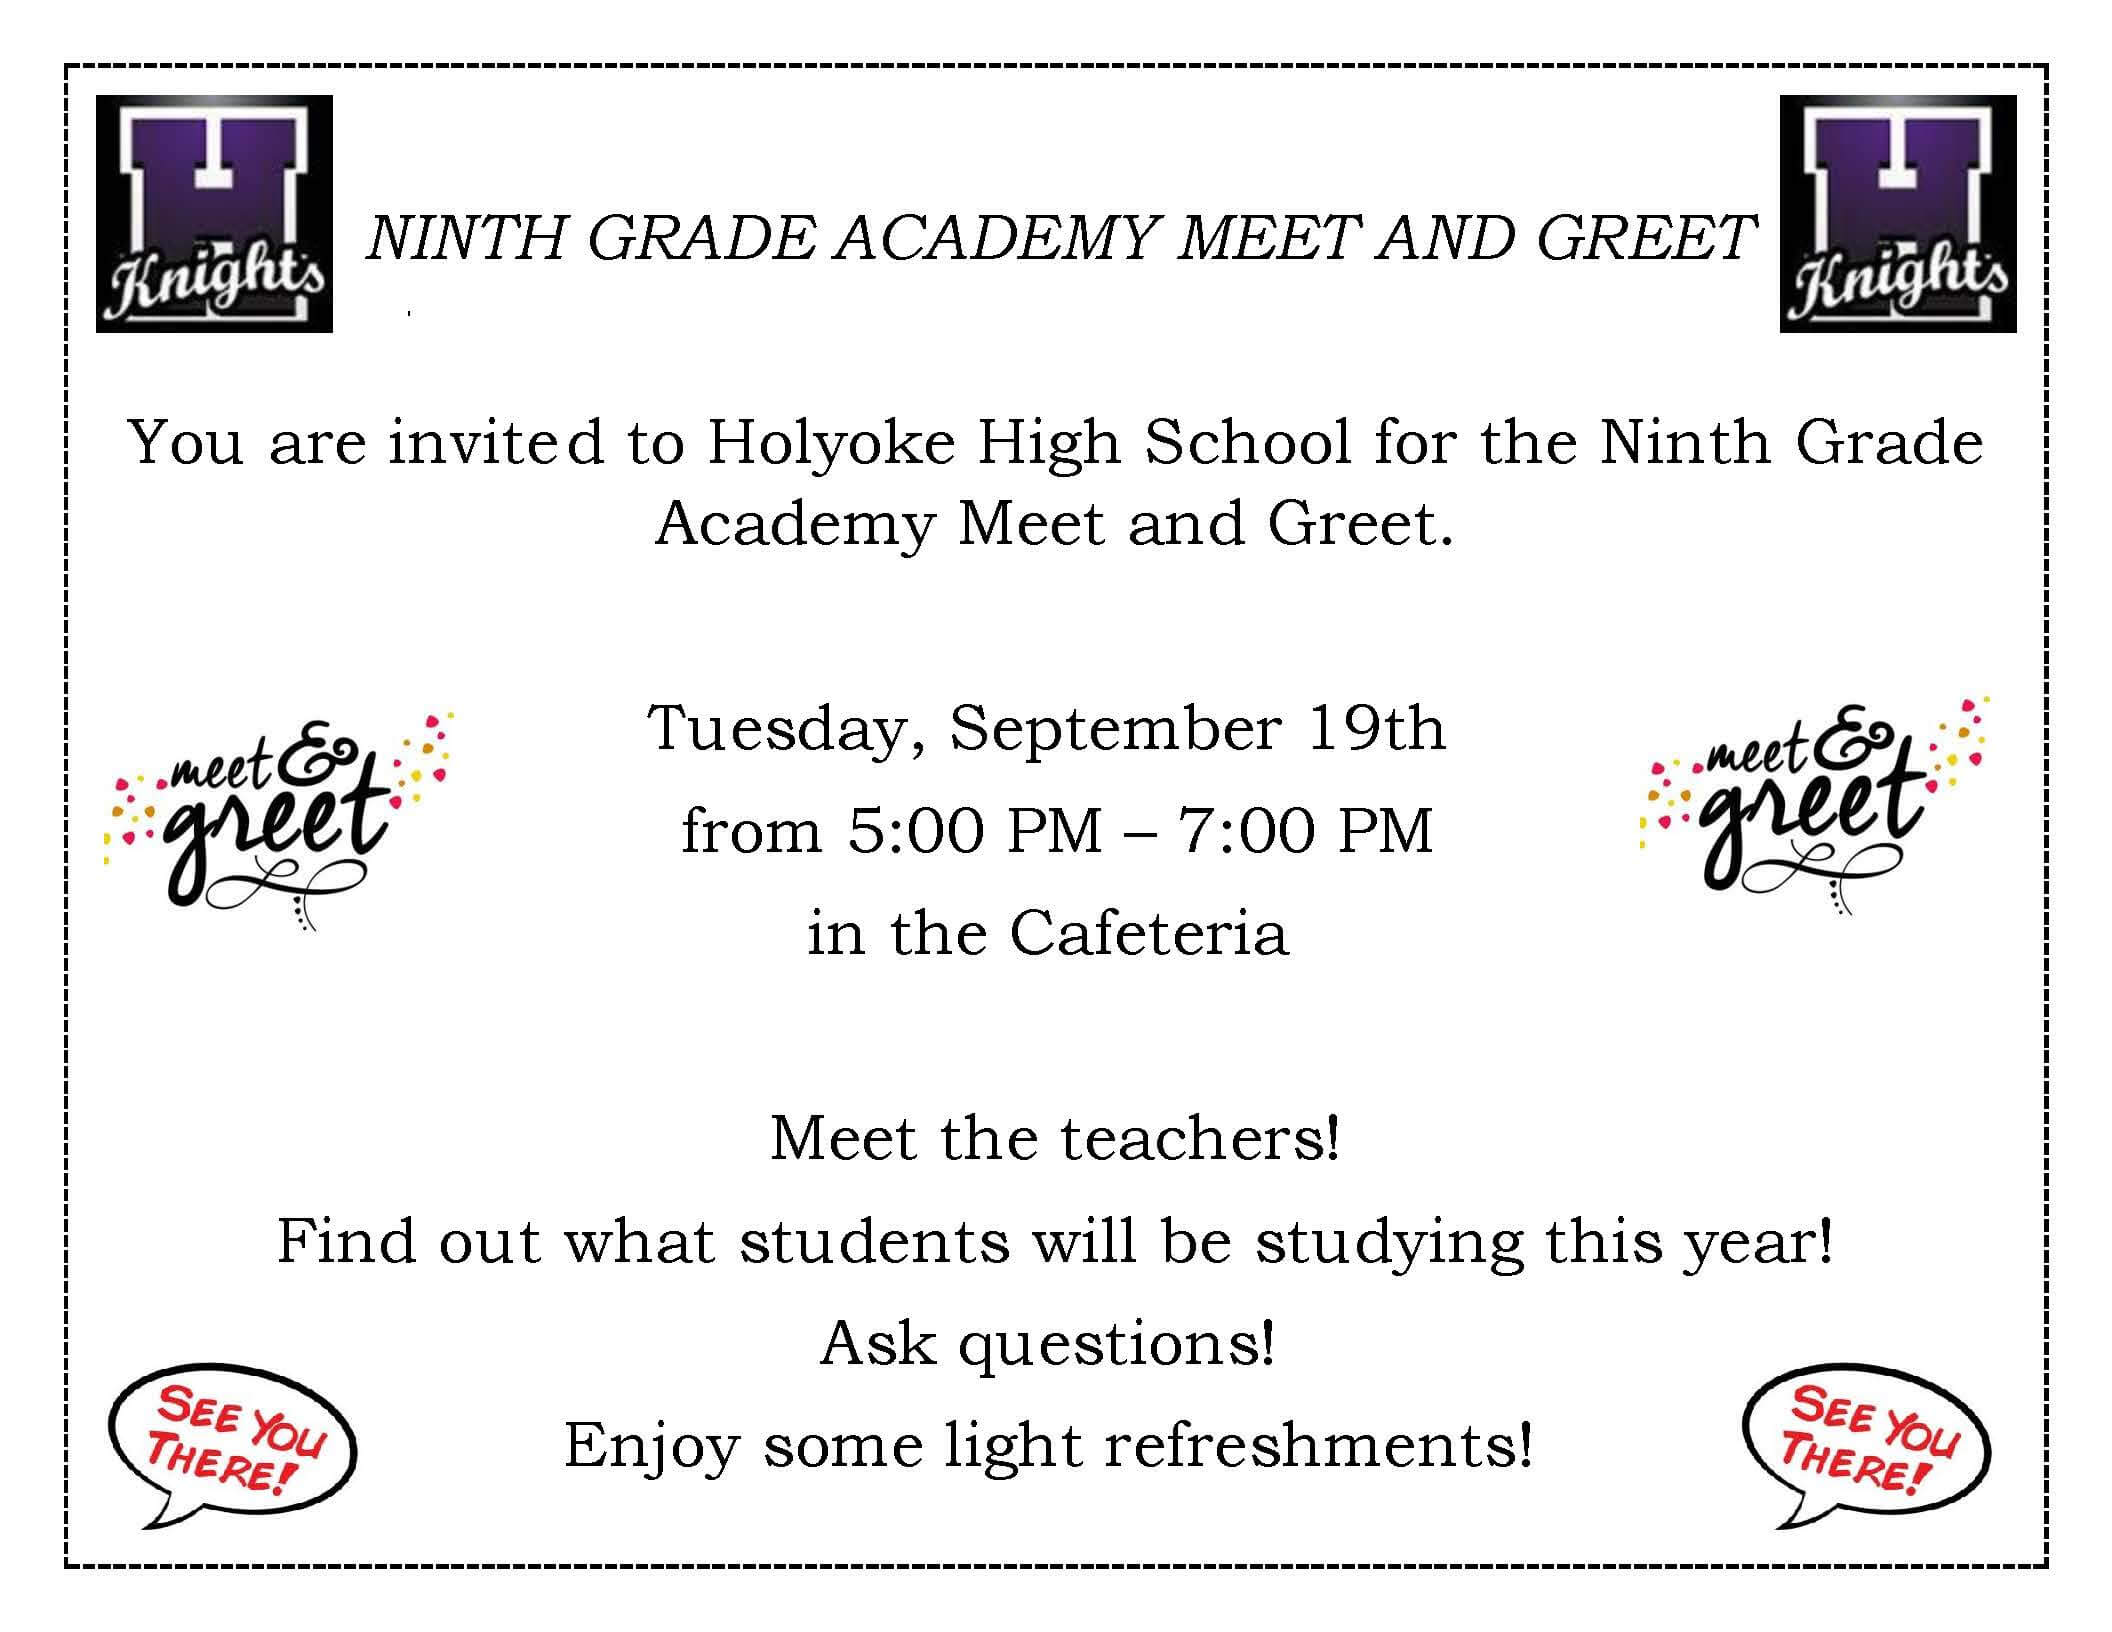 9th grade academy meet and greet english